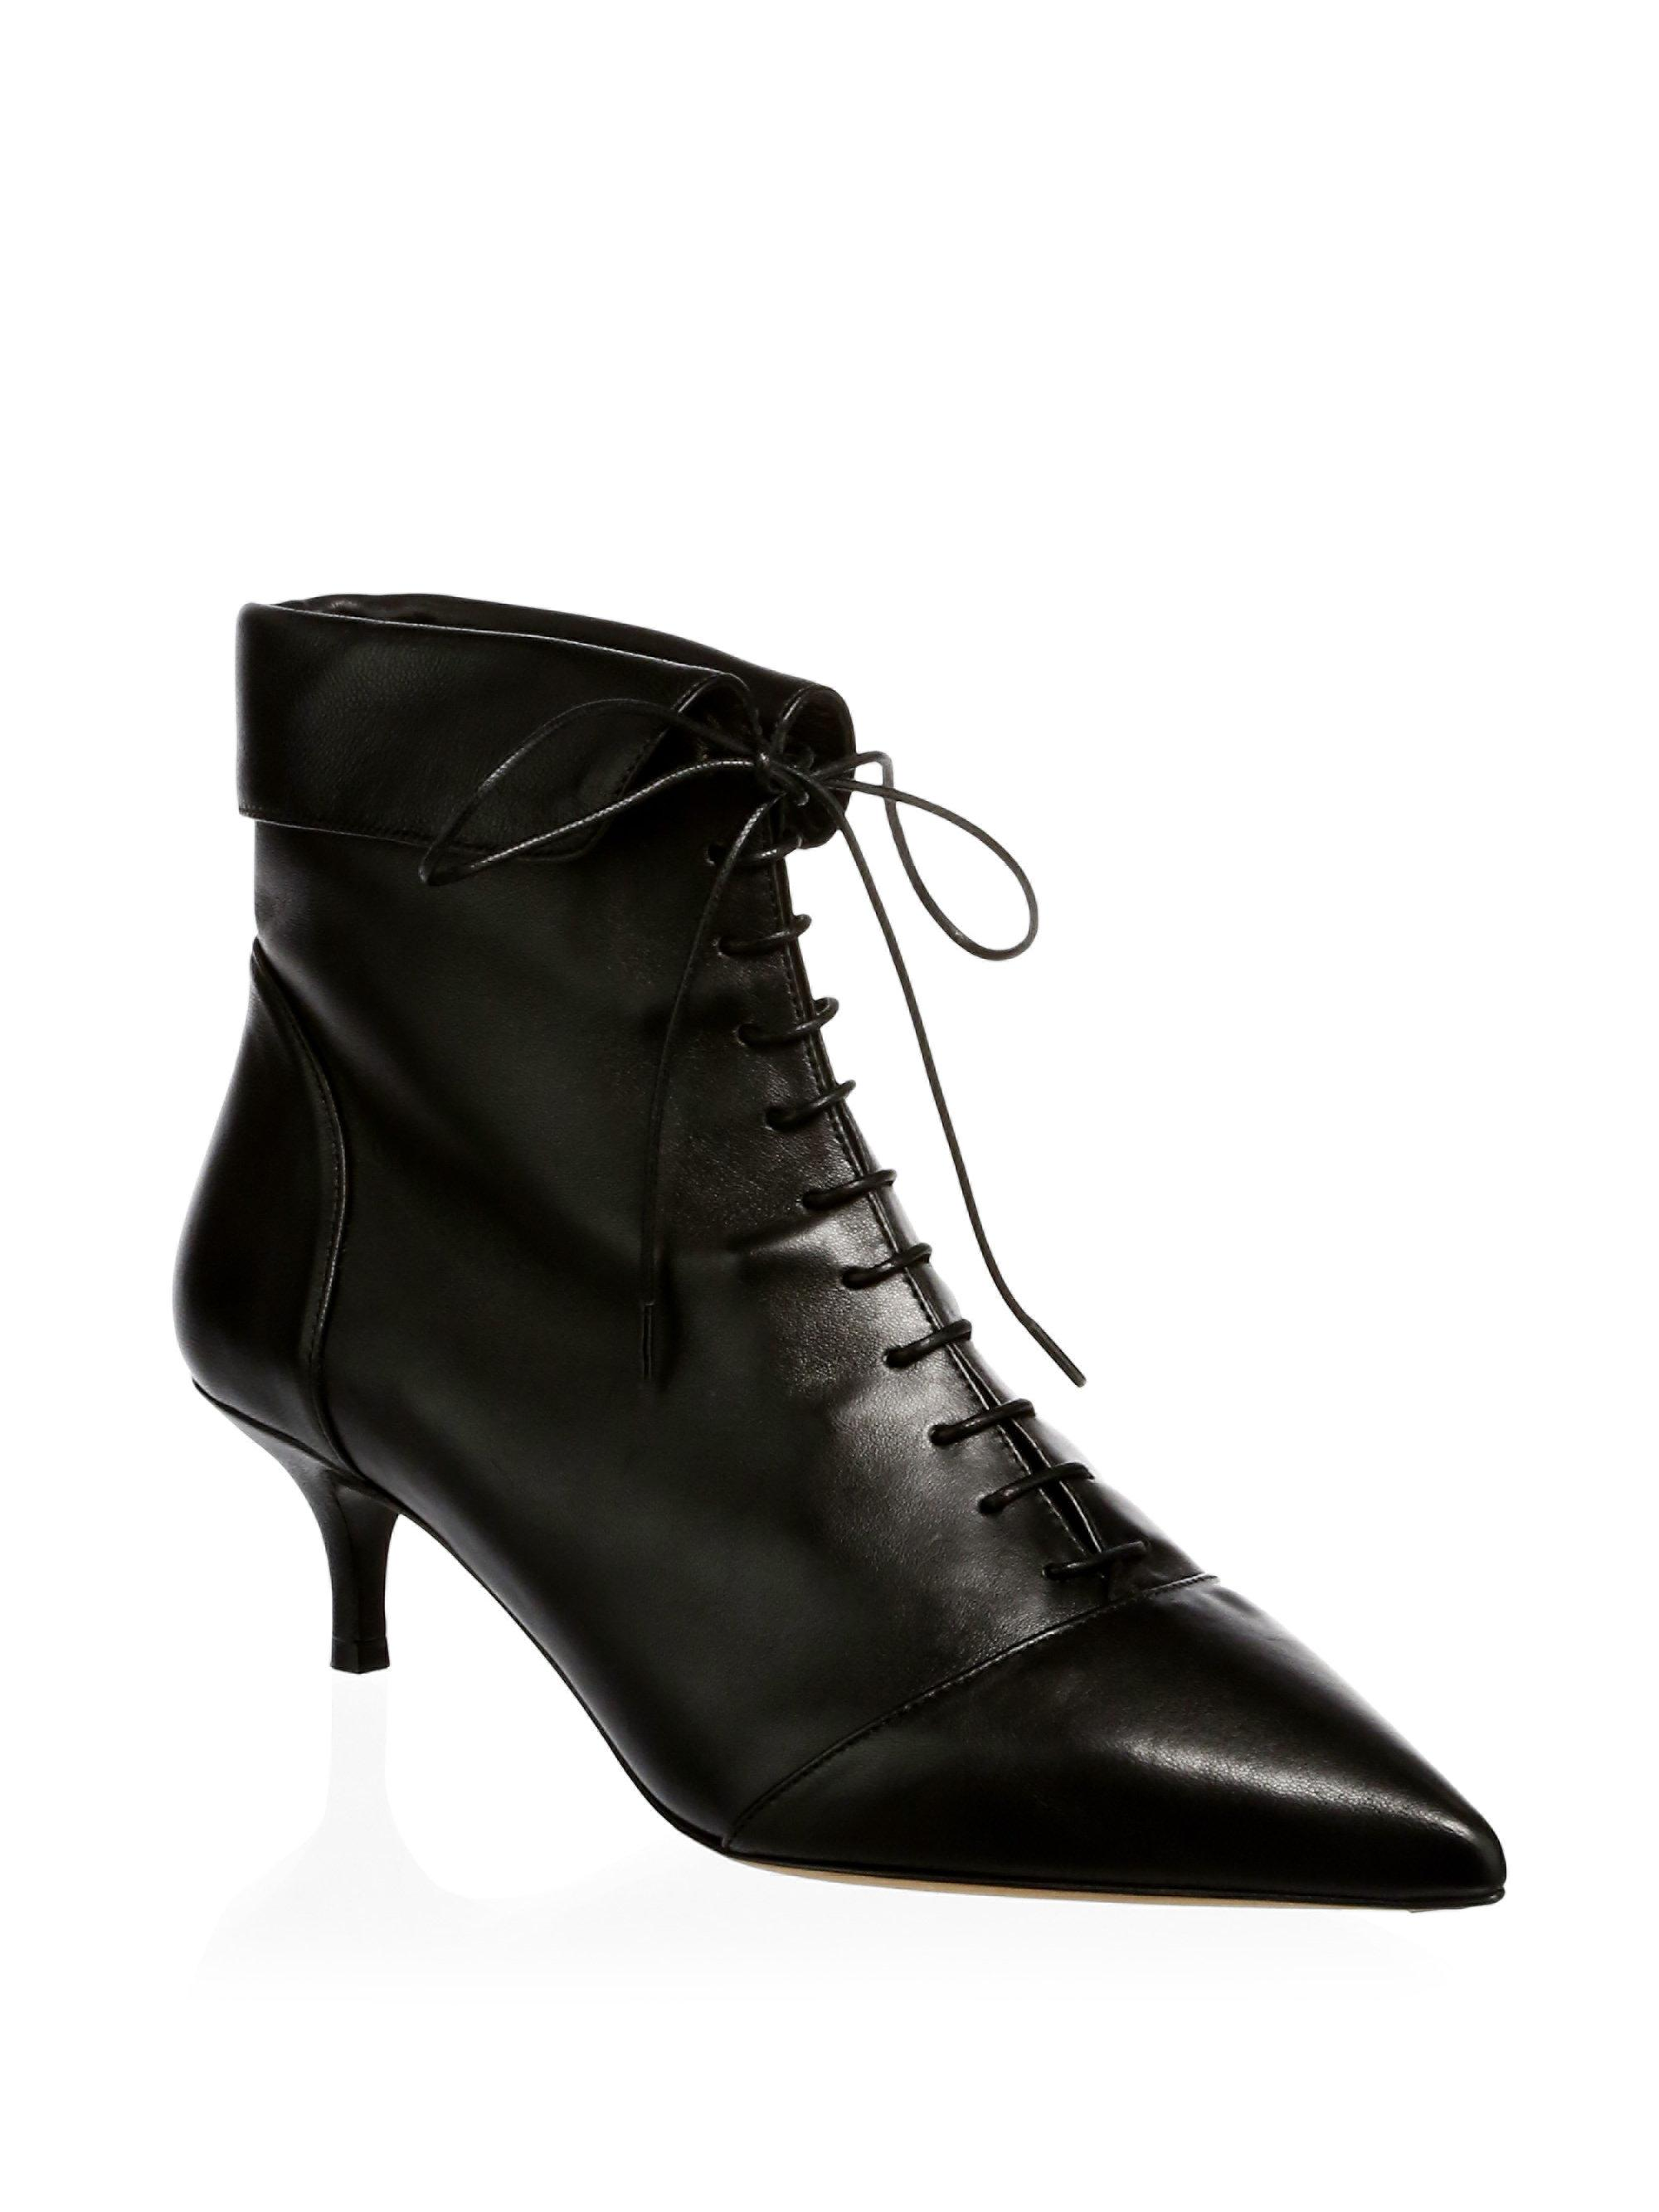 Tabitha Simmons Pointed-Toe Leather Booties free shipping shop offer ZYwcCDK